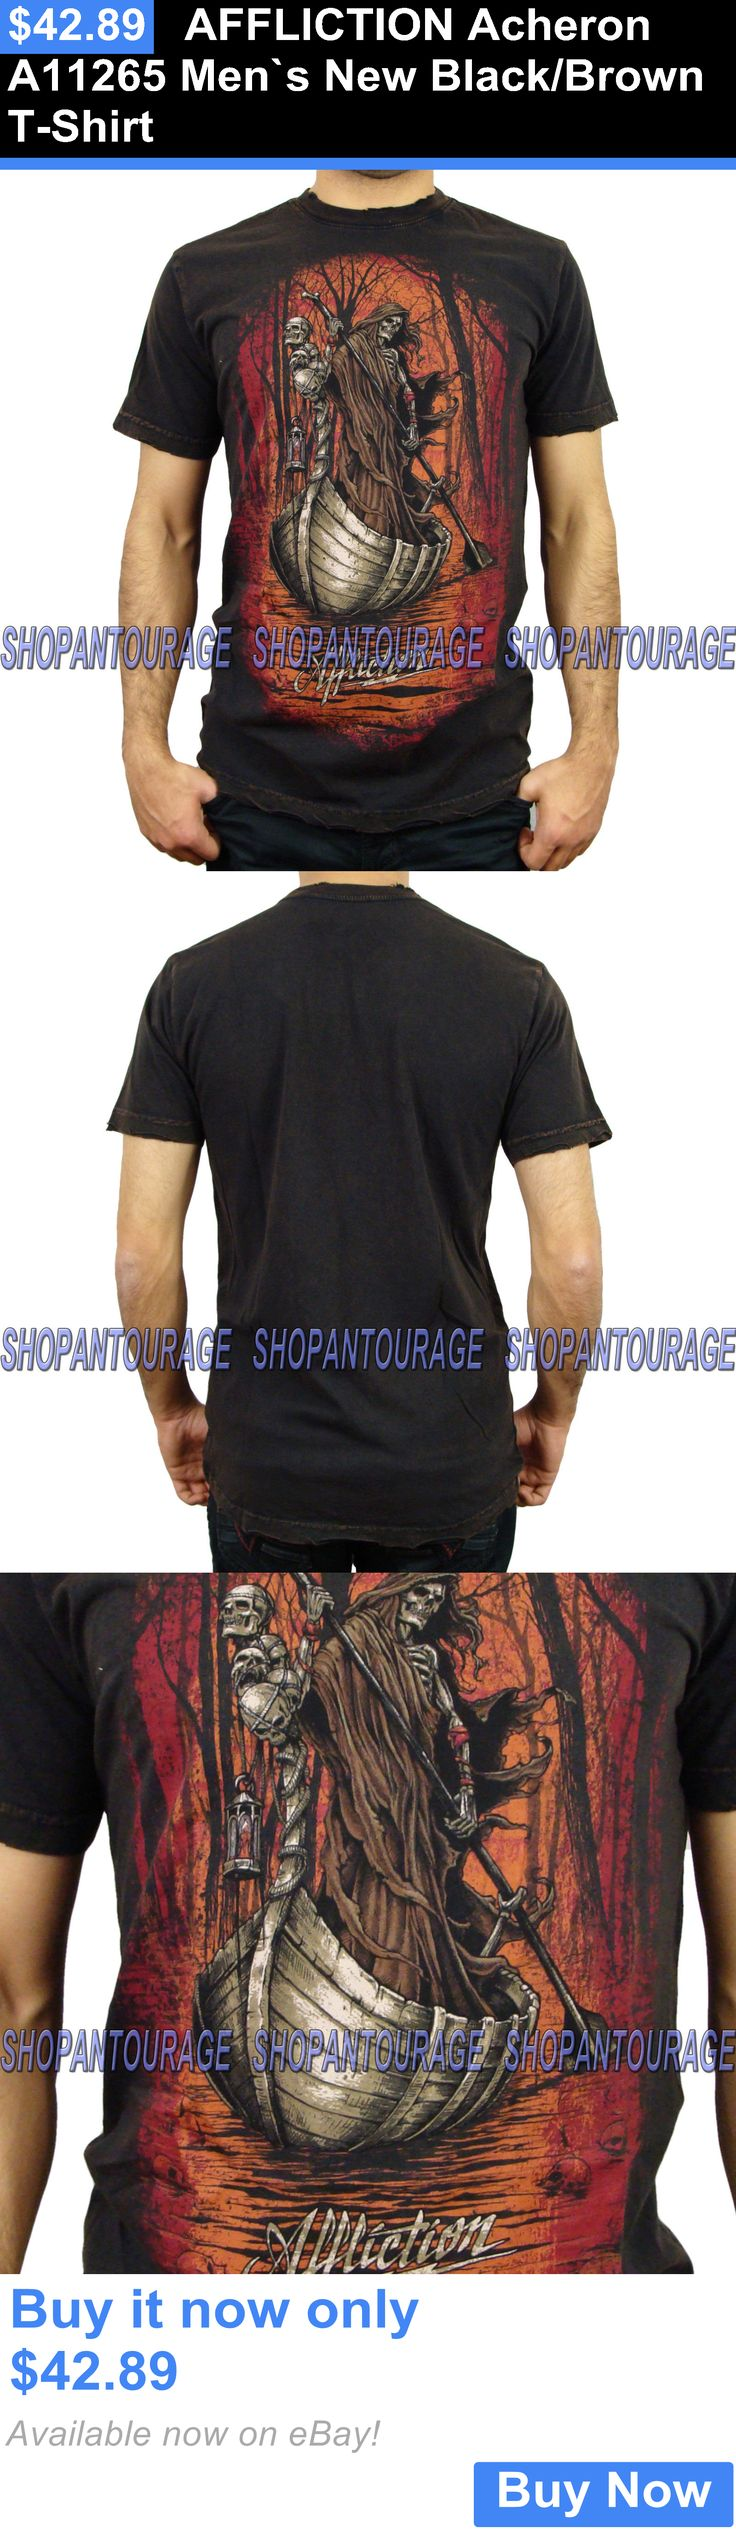 clothing and accessories: Affliction Acheron A11265 Men`S New Black/Brown T-Shirt BUY IT NOW ONLY: $42.89